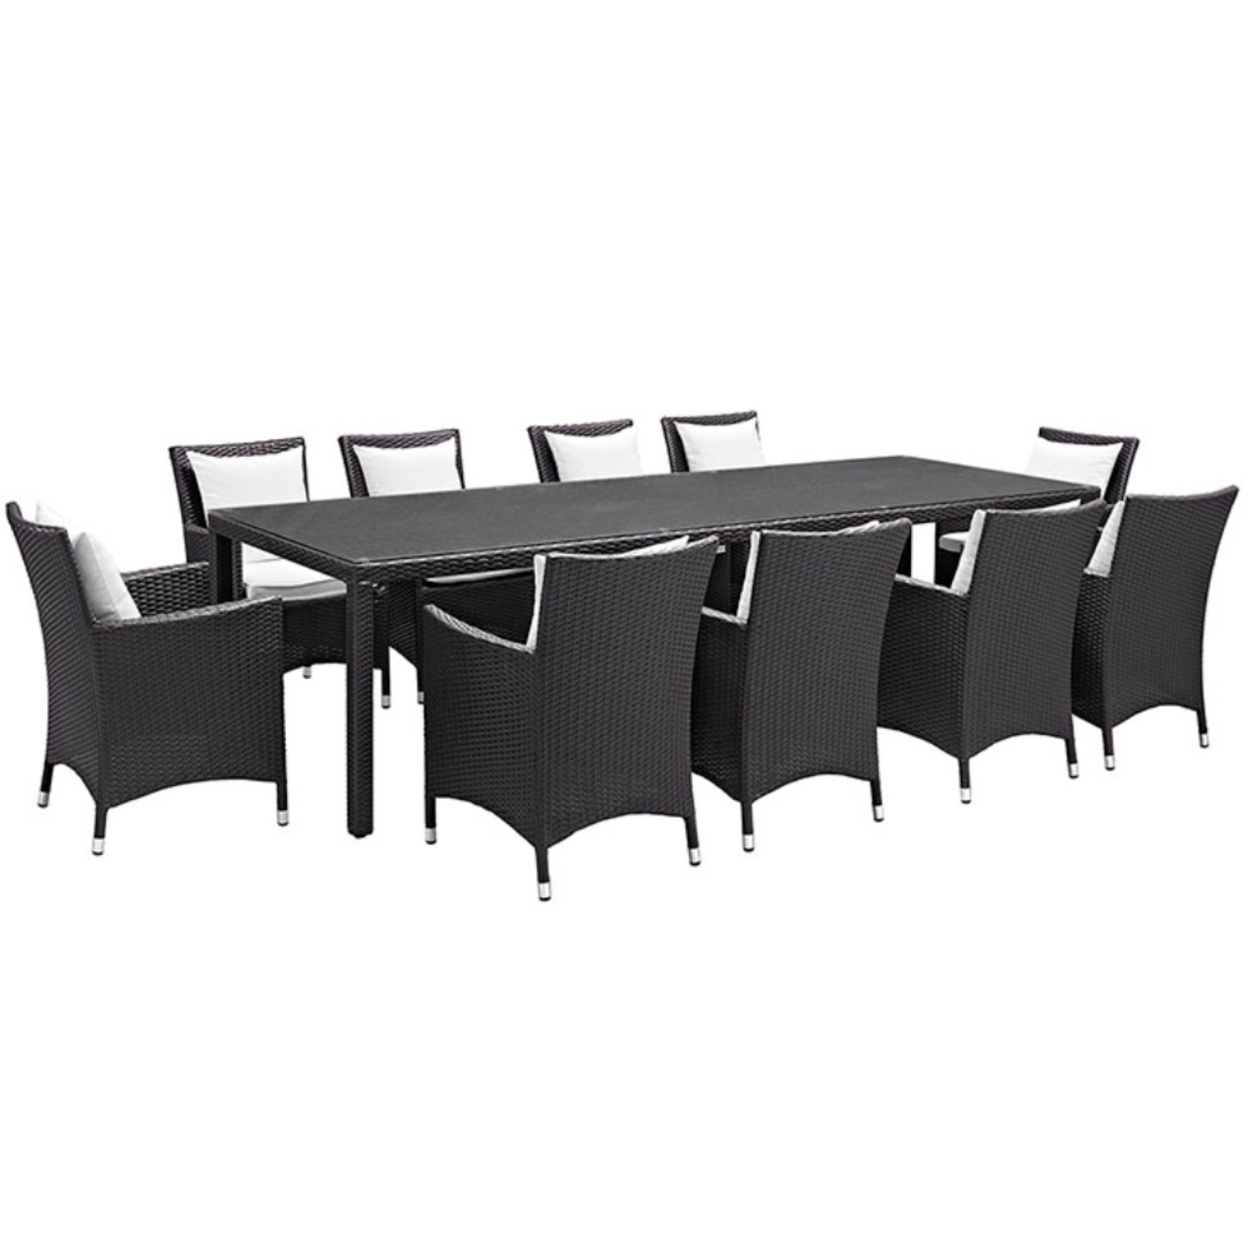 "Convene 11 Piece Outdoor Patio Dining Set, Espresso White Size : 39.5""lx114\""wx29.5\""h"